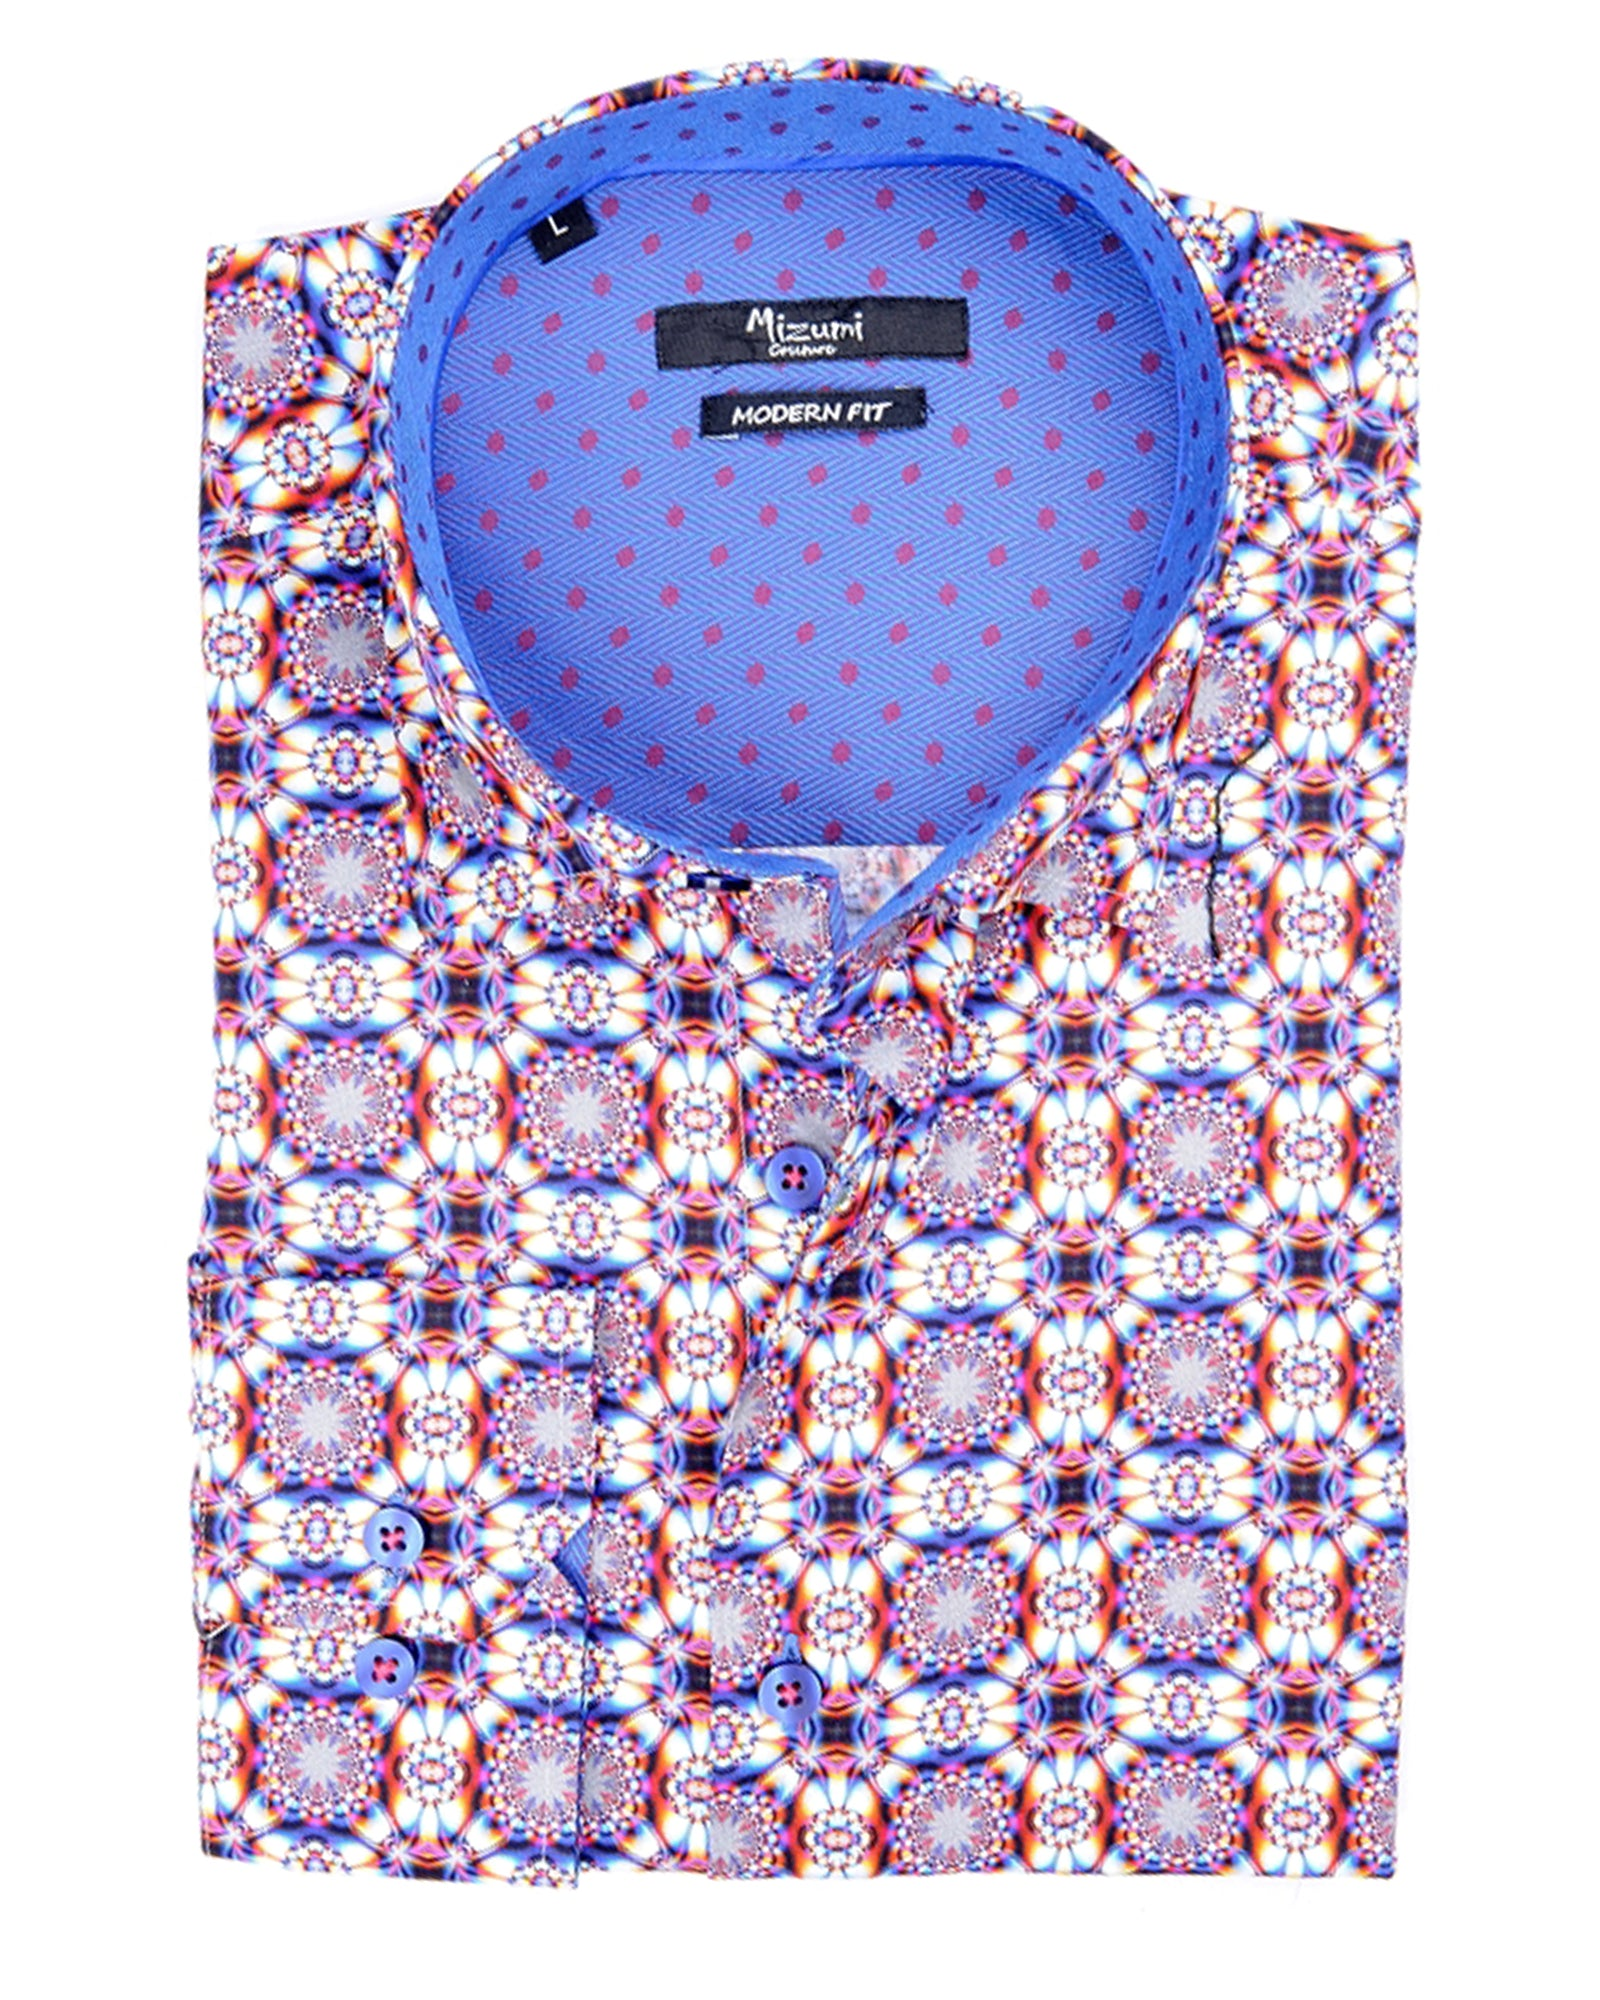 Psychedelic Trip Sport Shirt - Rainwater's Men's Clothing and Tuxedo Rental